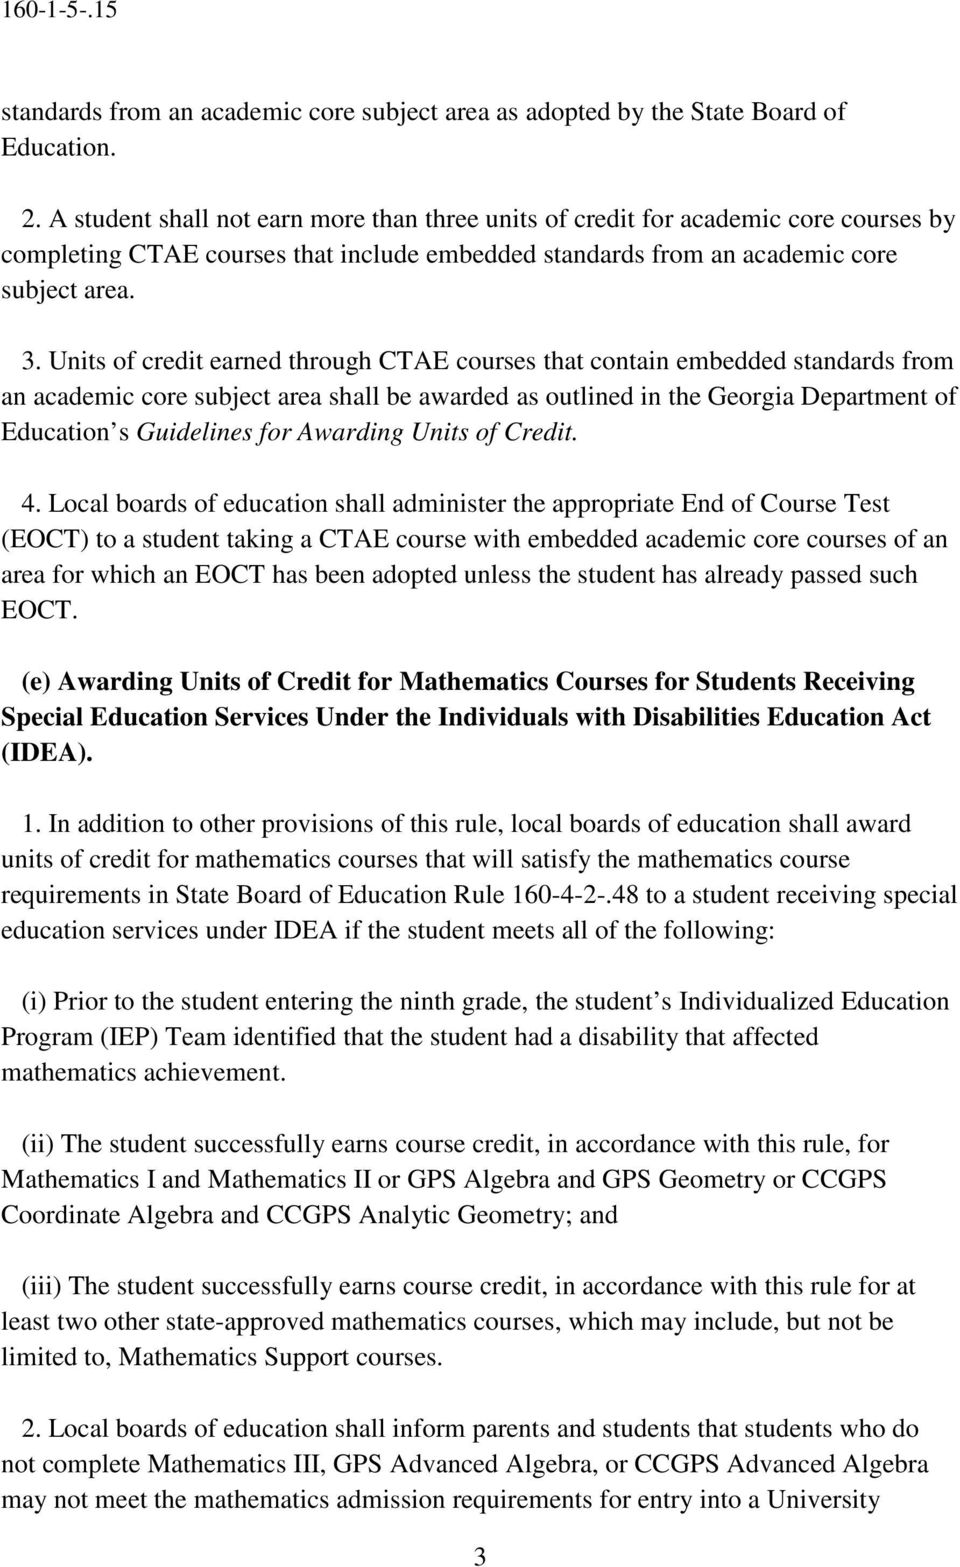 Units of credit earned through CTAE courses that contain embedded standards from an academic core subject area shall be awarded as outlined in the Georgia Department of Education s Guidelines for